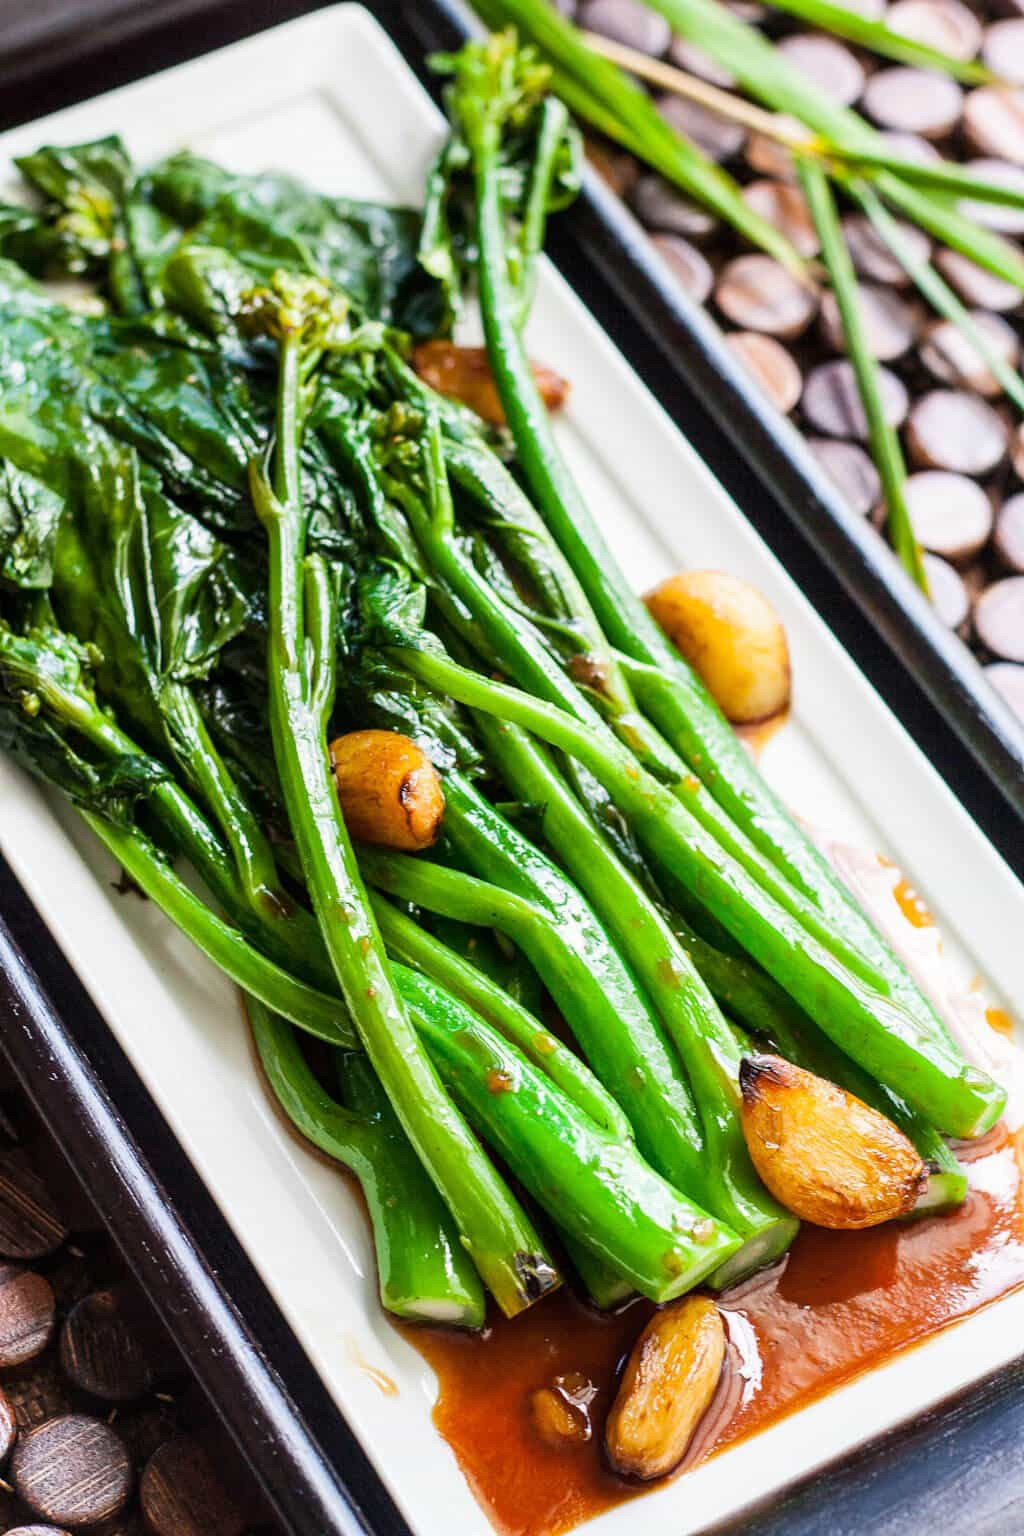 Chinese Broccoli Recipe  Chinese Broccoli Gai Lan with Oyster Sauce Steamy